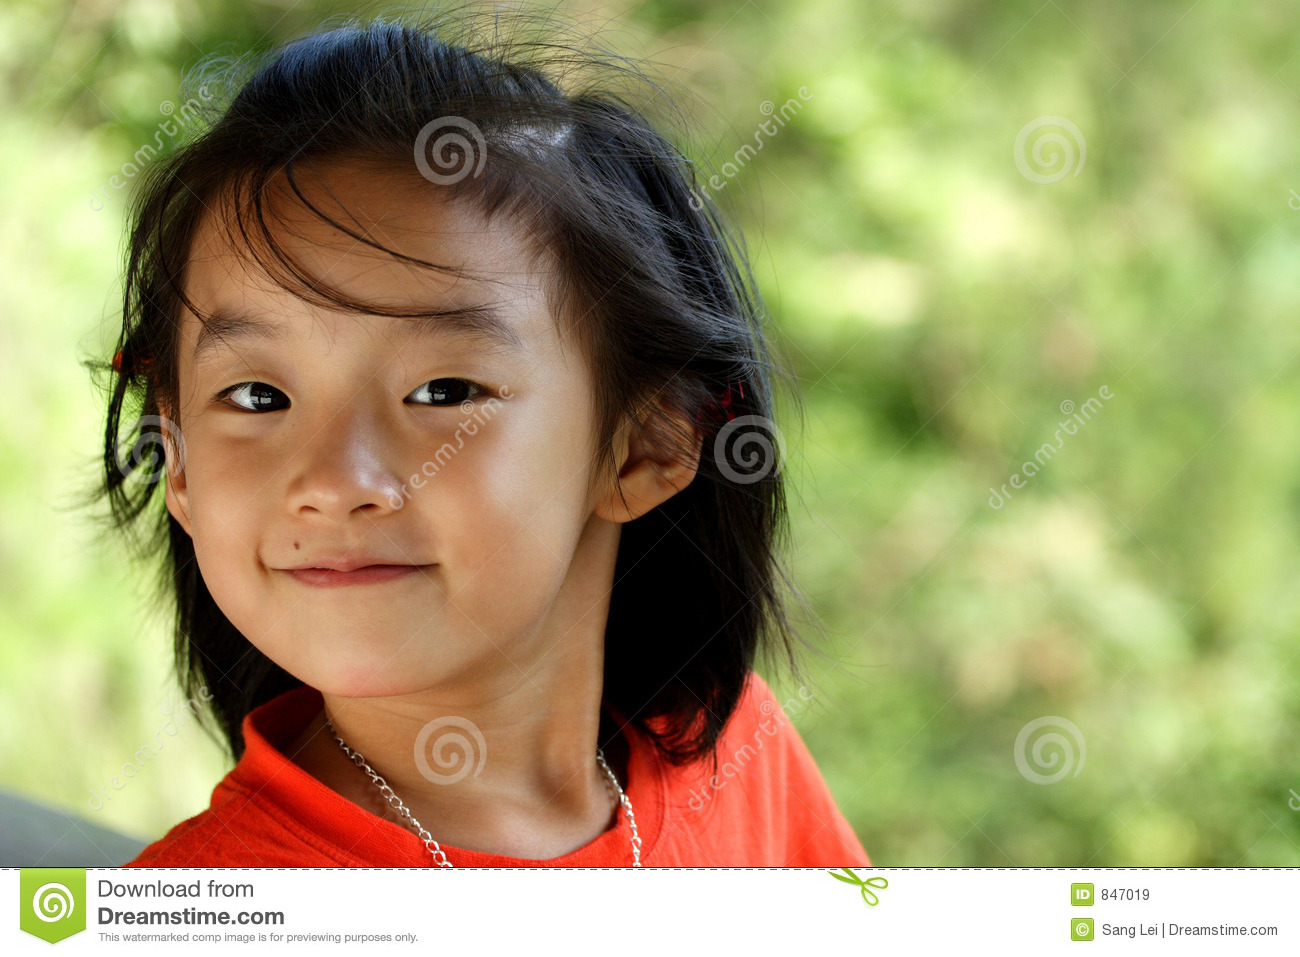 Chinese Children Royalty Free Stock Images - Image: 847019